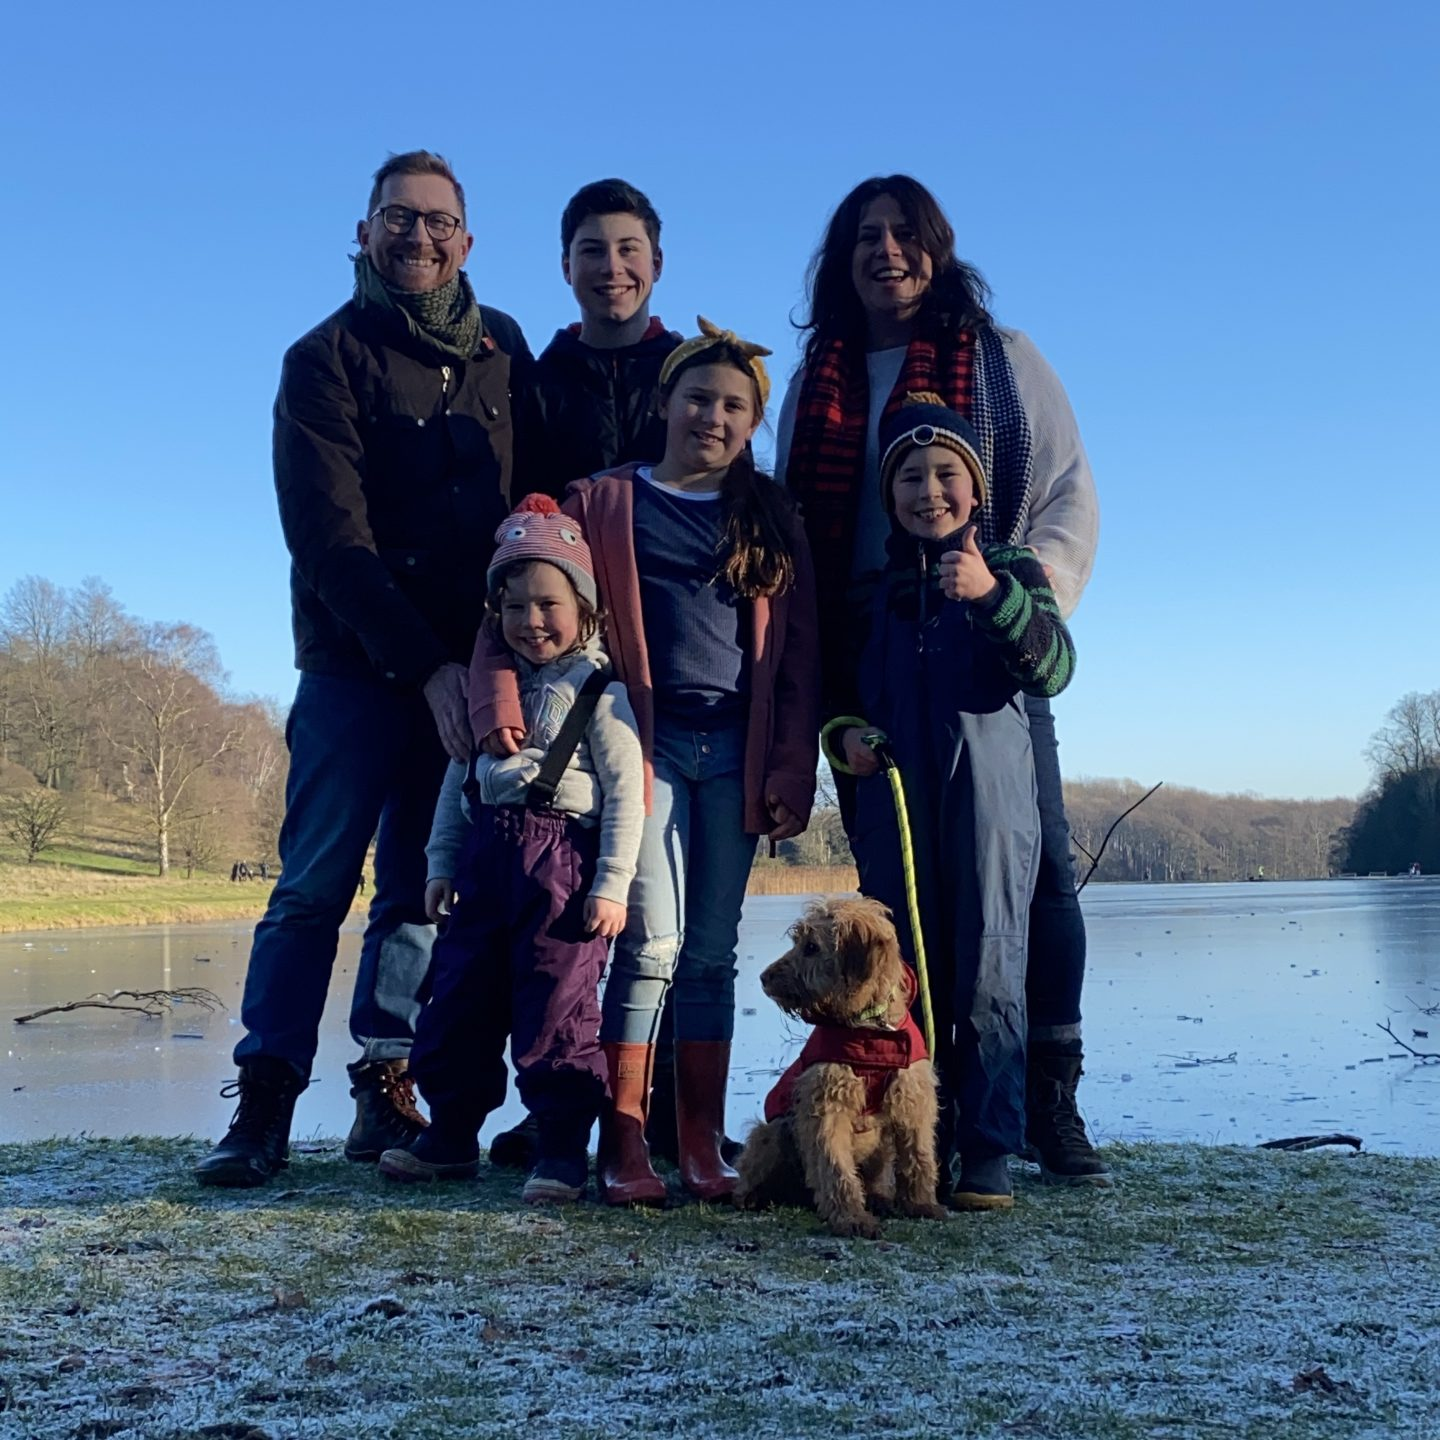 Happy New Year with a photo of a family of 6 and a dog in front of a frozen lake